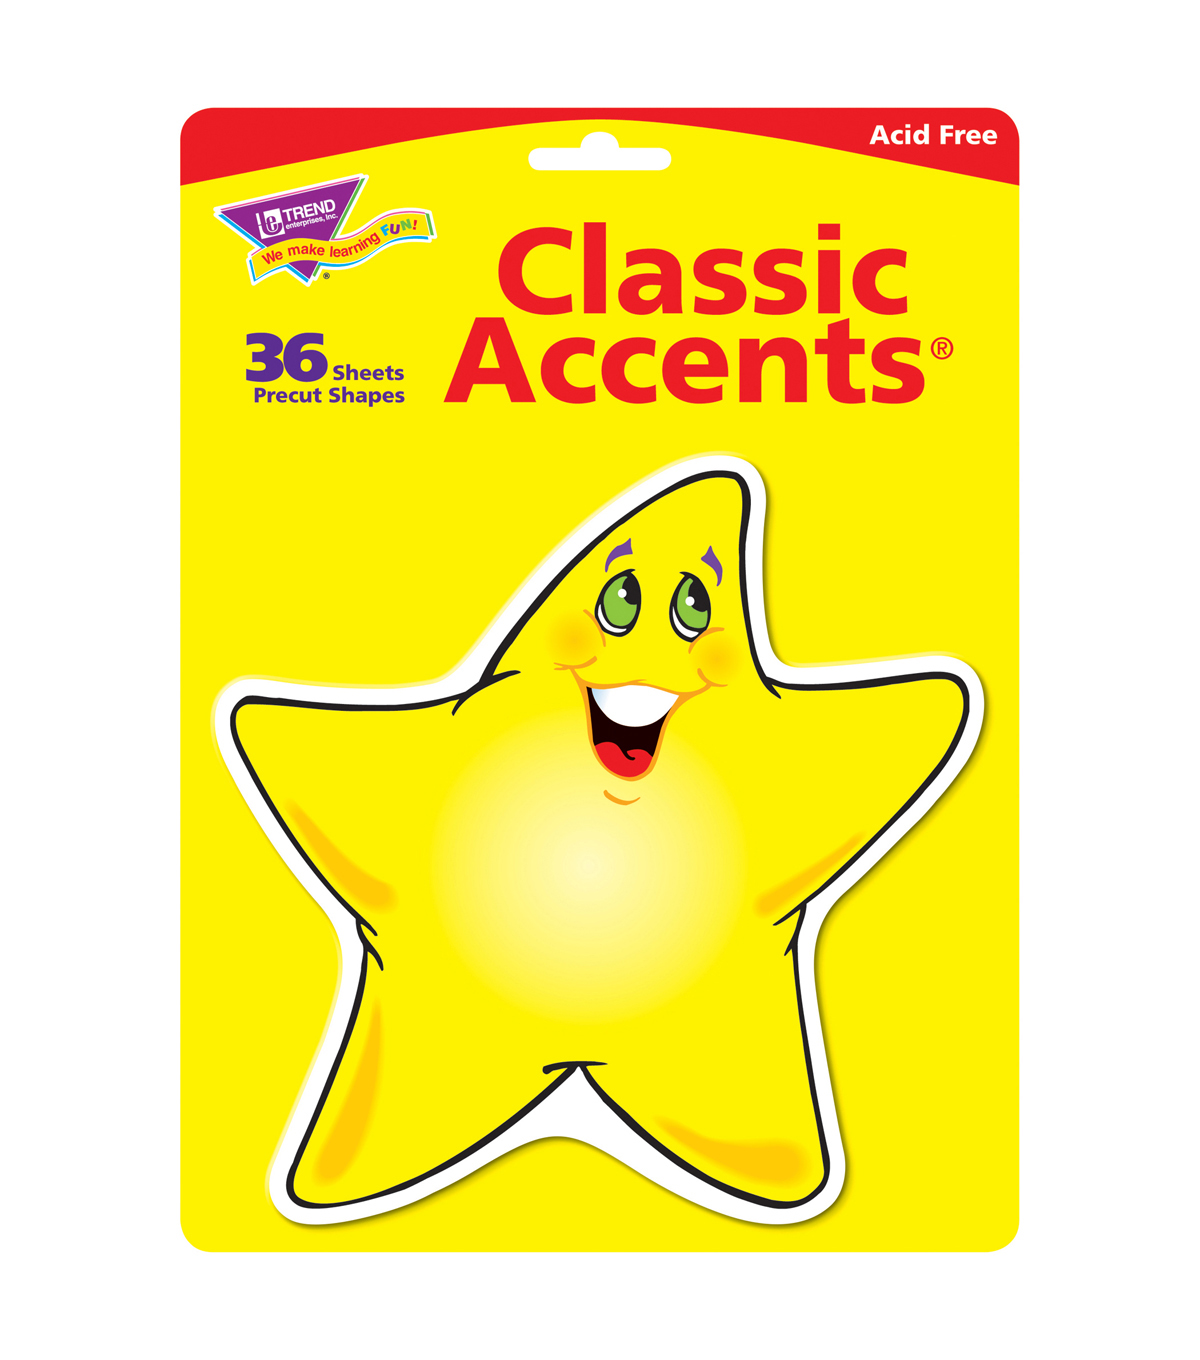 Shining Stars Classic Accents, 36 Per Pack, 6 Packs